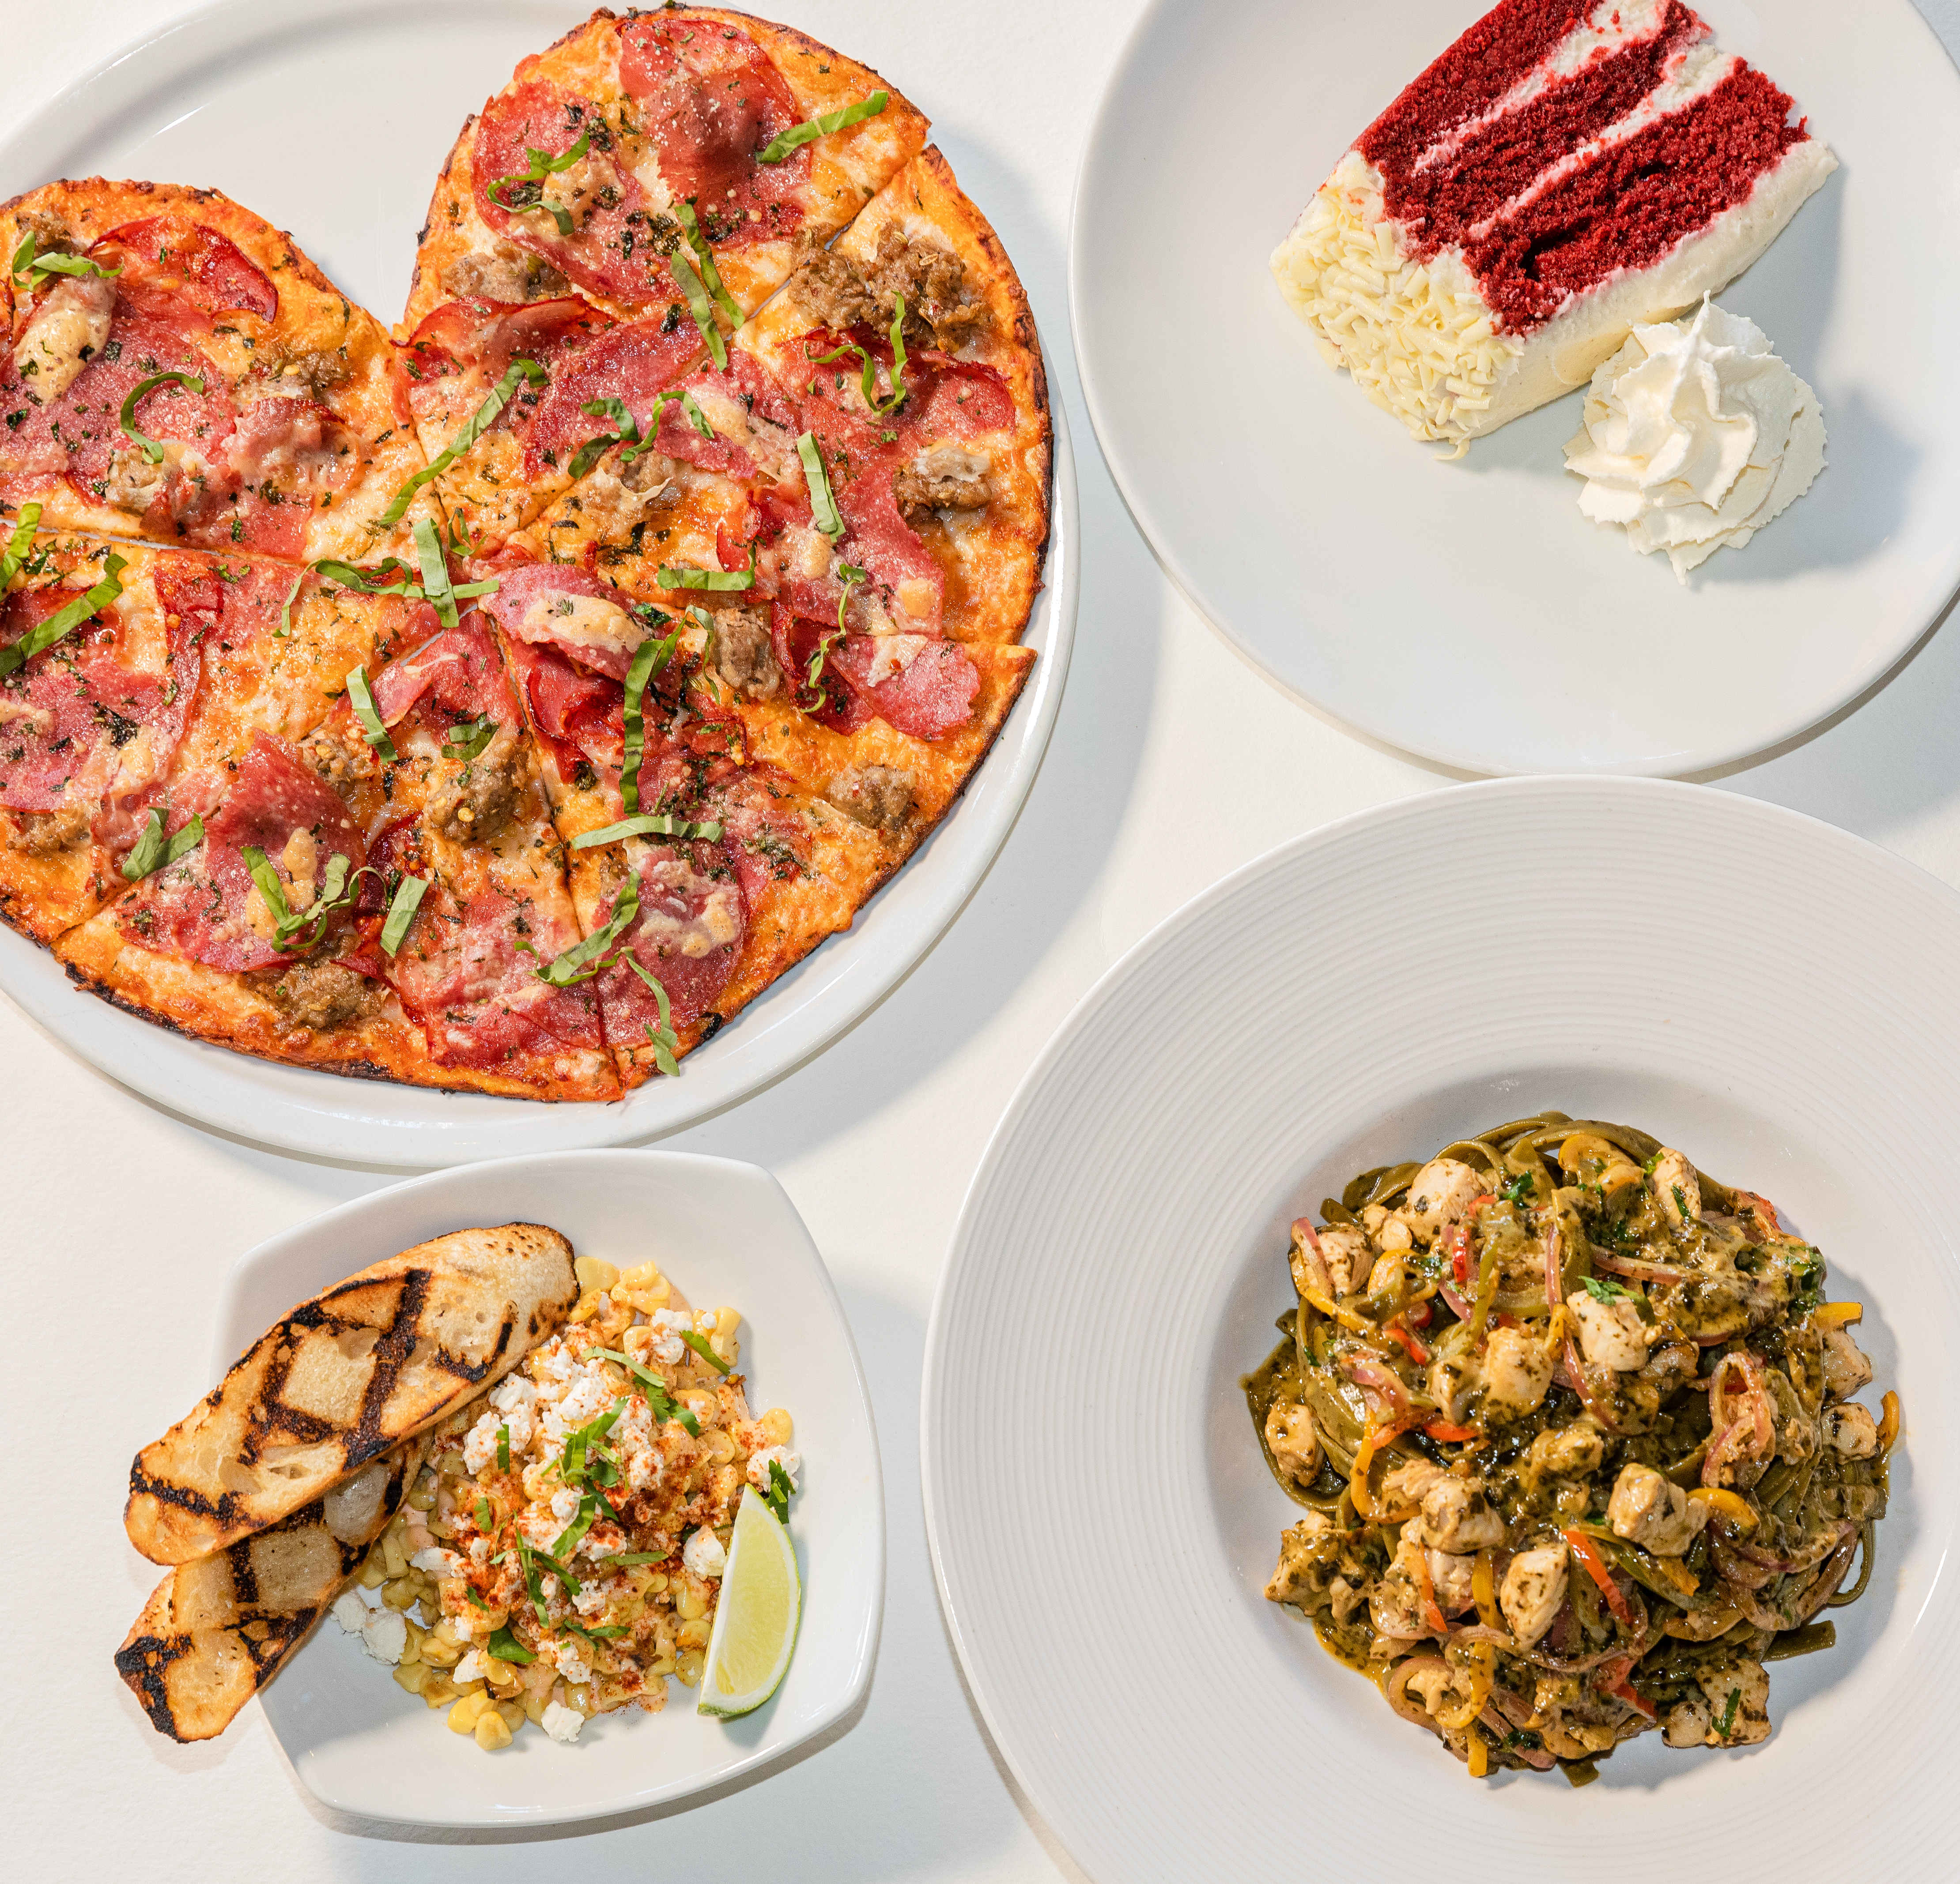 Valentine's Day Sweet Deal for Two from California Pizza Kitchen